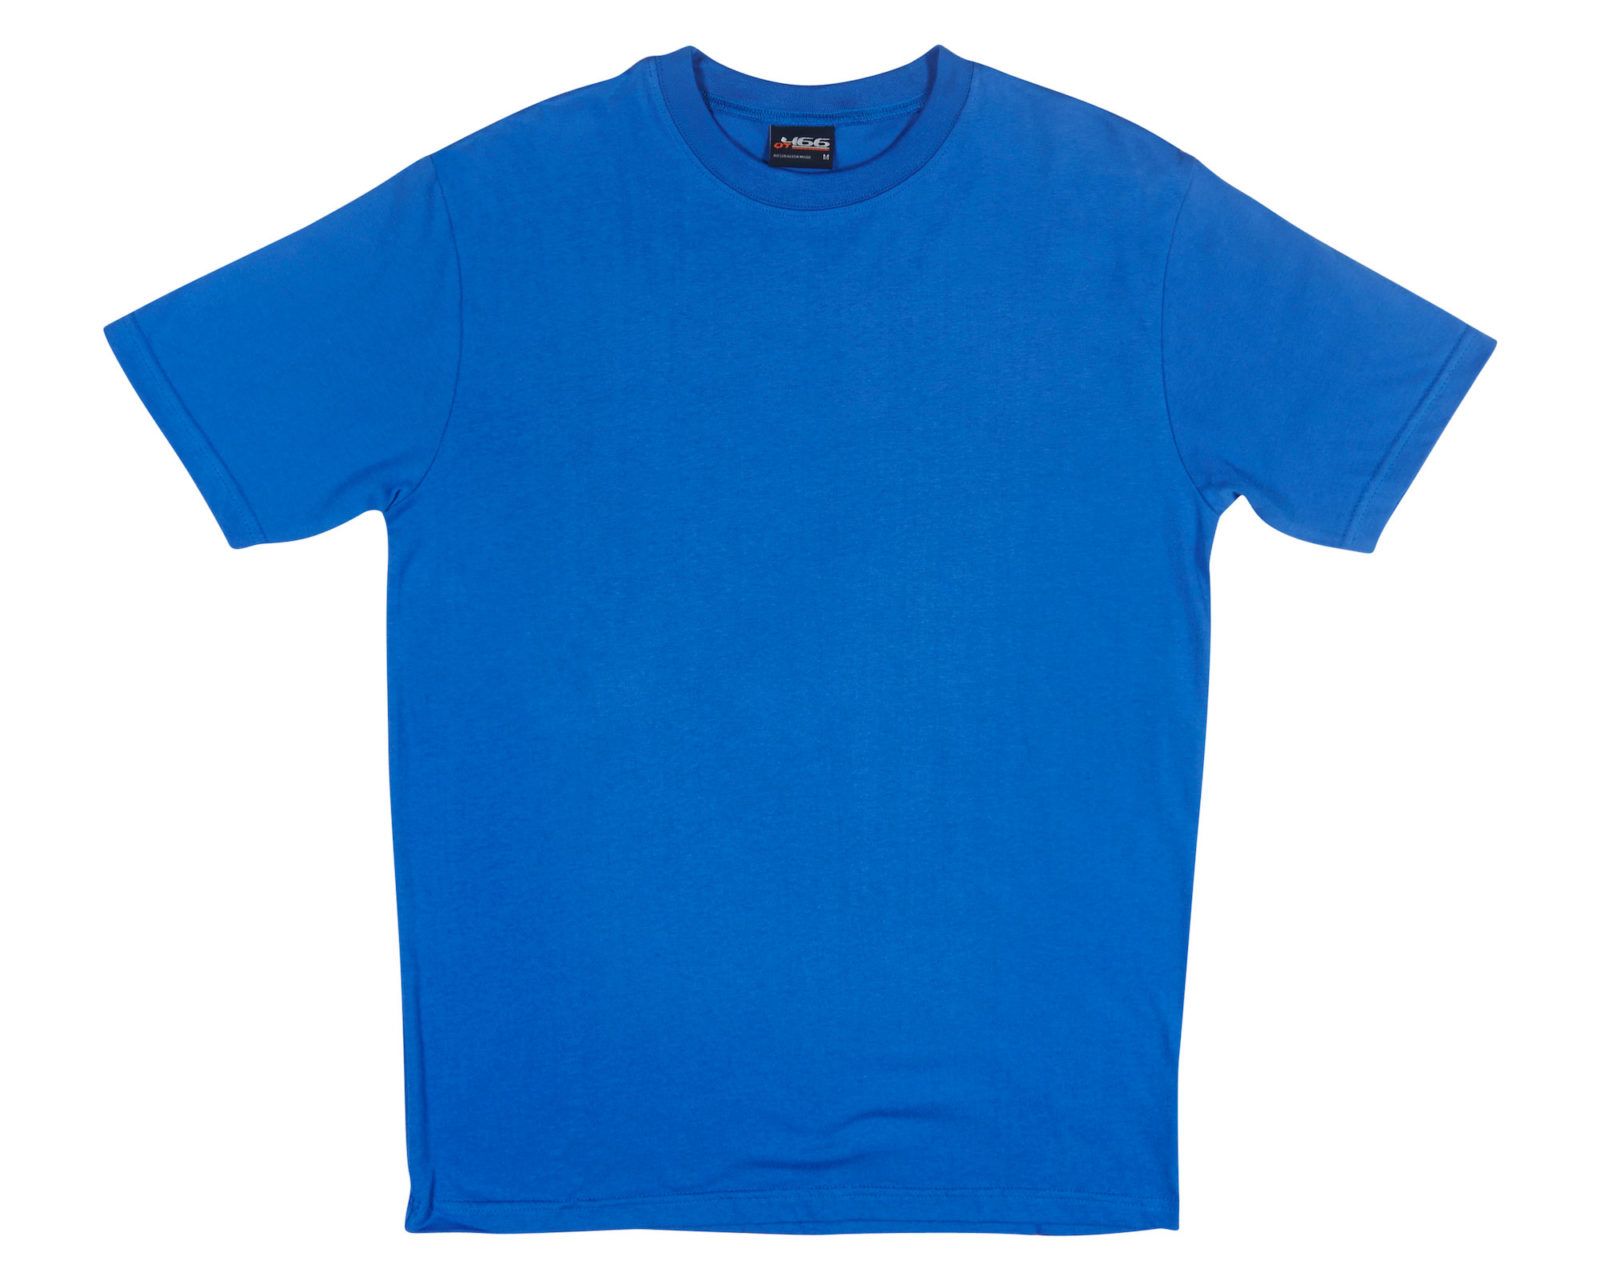 Qualitops Mens Classic Short Sleeve Tee. Australian Made